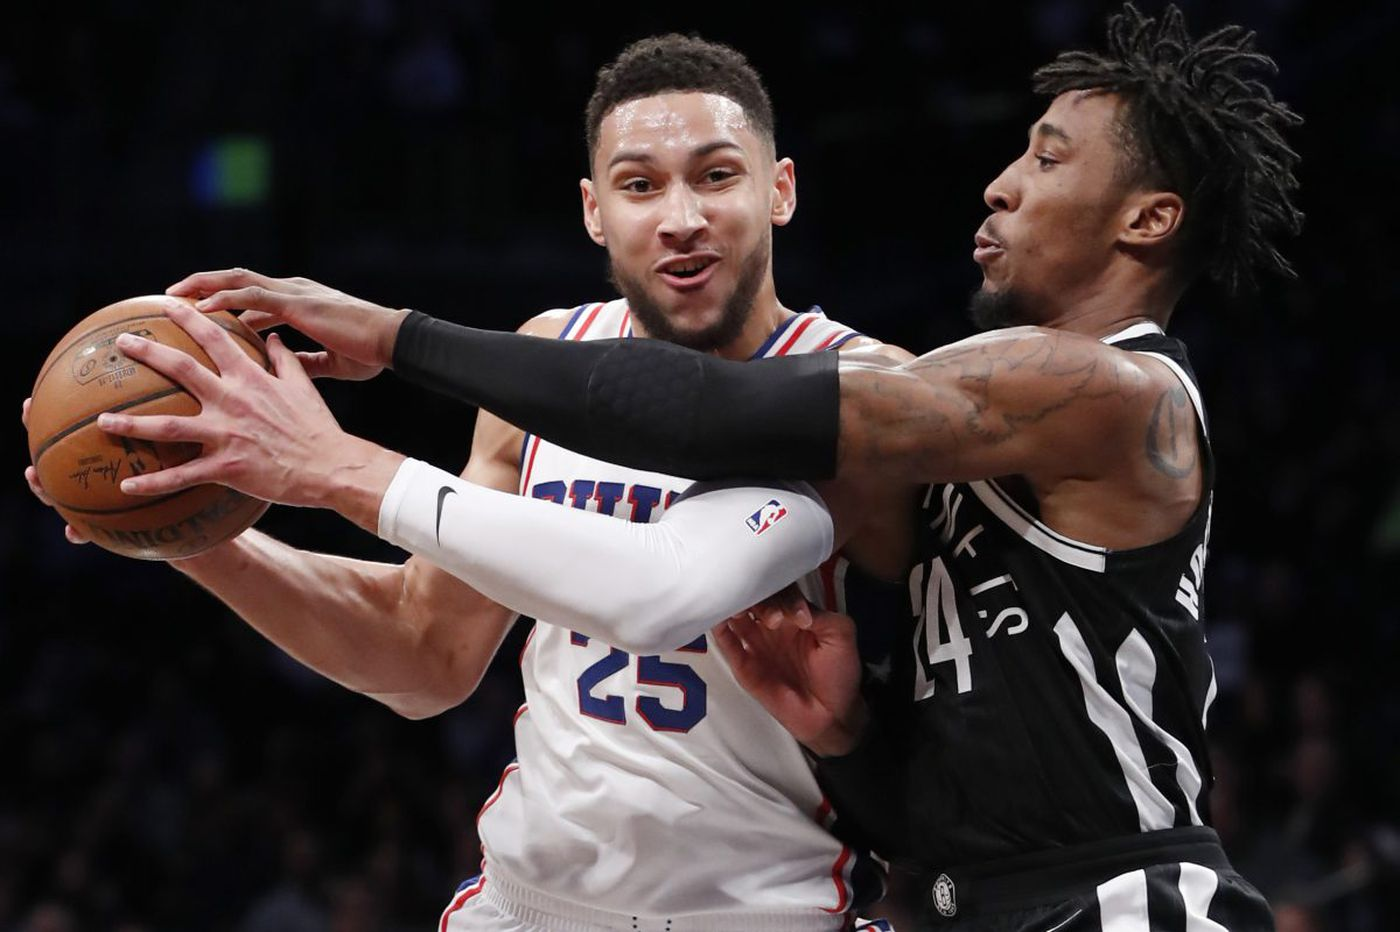 Sixers-Nets preview: Looking to duplicate Sunday's win, this time at home